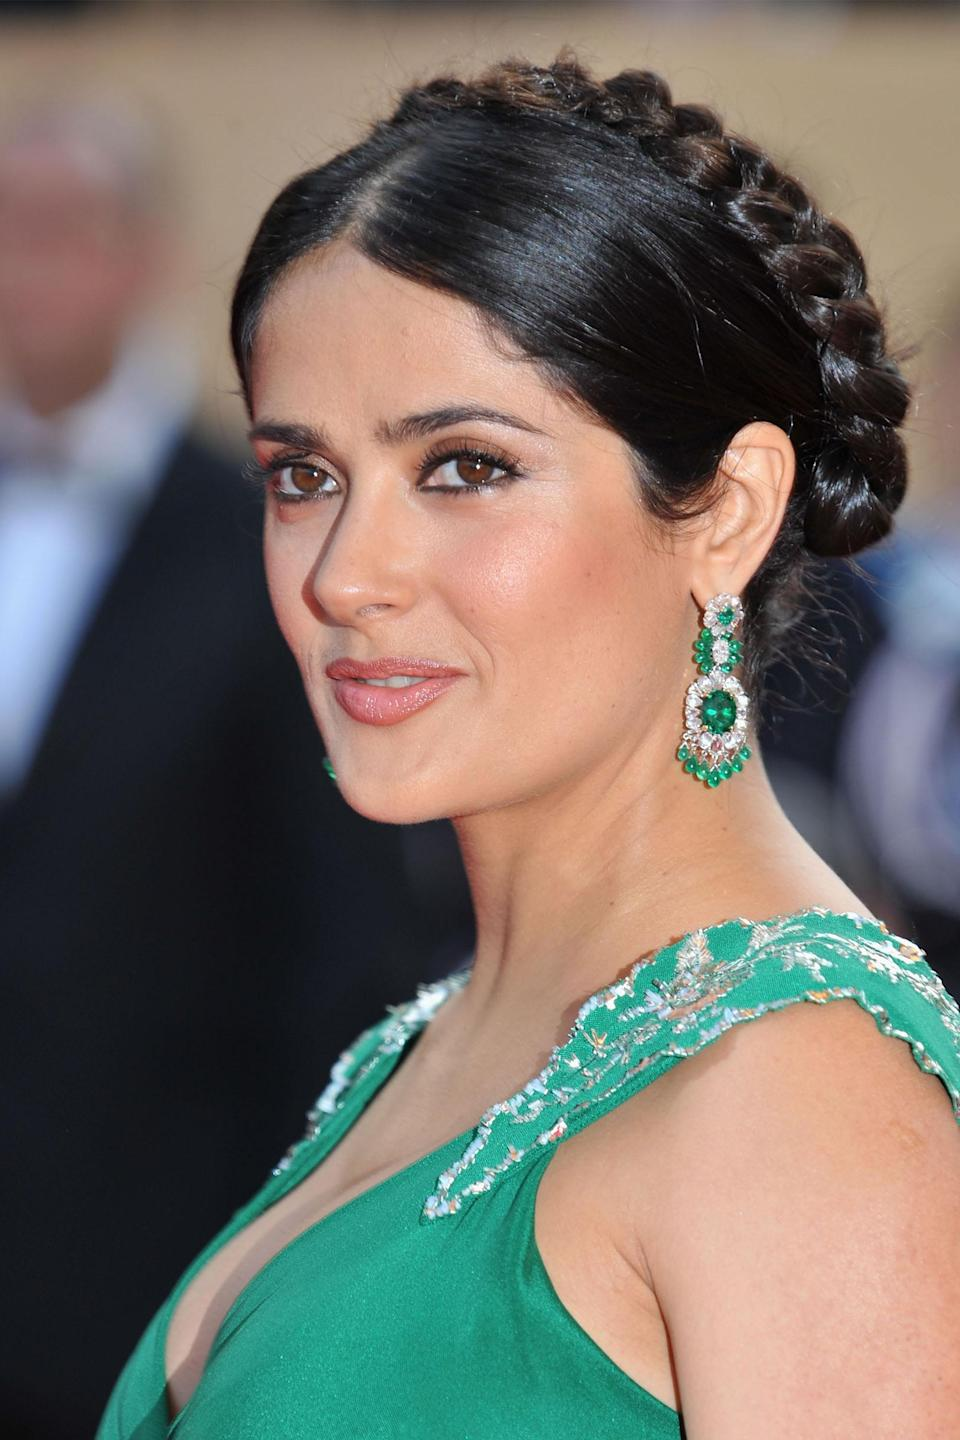 "<h3>Salma Hayek</h3> <br>Show off your neck — and a pair of diamond-and-emerald earrings that probably require their own security — with a sleek crown braid à la <a href=""https://www.refinery29.com/en-us/2020/06/9868837/salma-hayek-brown-hair-highlights-summer"" rel=""nofollow noopener"" target=""_blank"" data-ylk=""slk:Salma Hayek"" class=""link rapid-noclick-resp"">Salma Hayek</a>.<span class=""copyright"">Photo: Pascal Le Segretain/Getty Images. </span><br>"